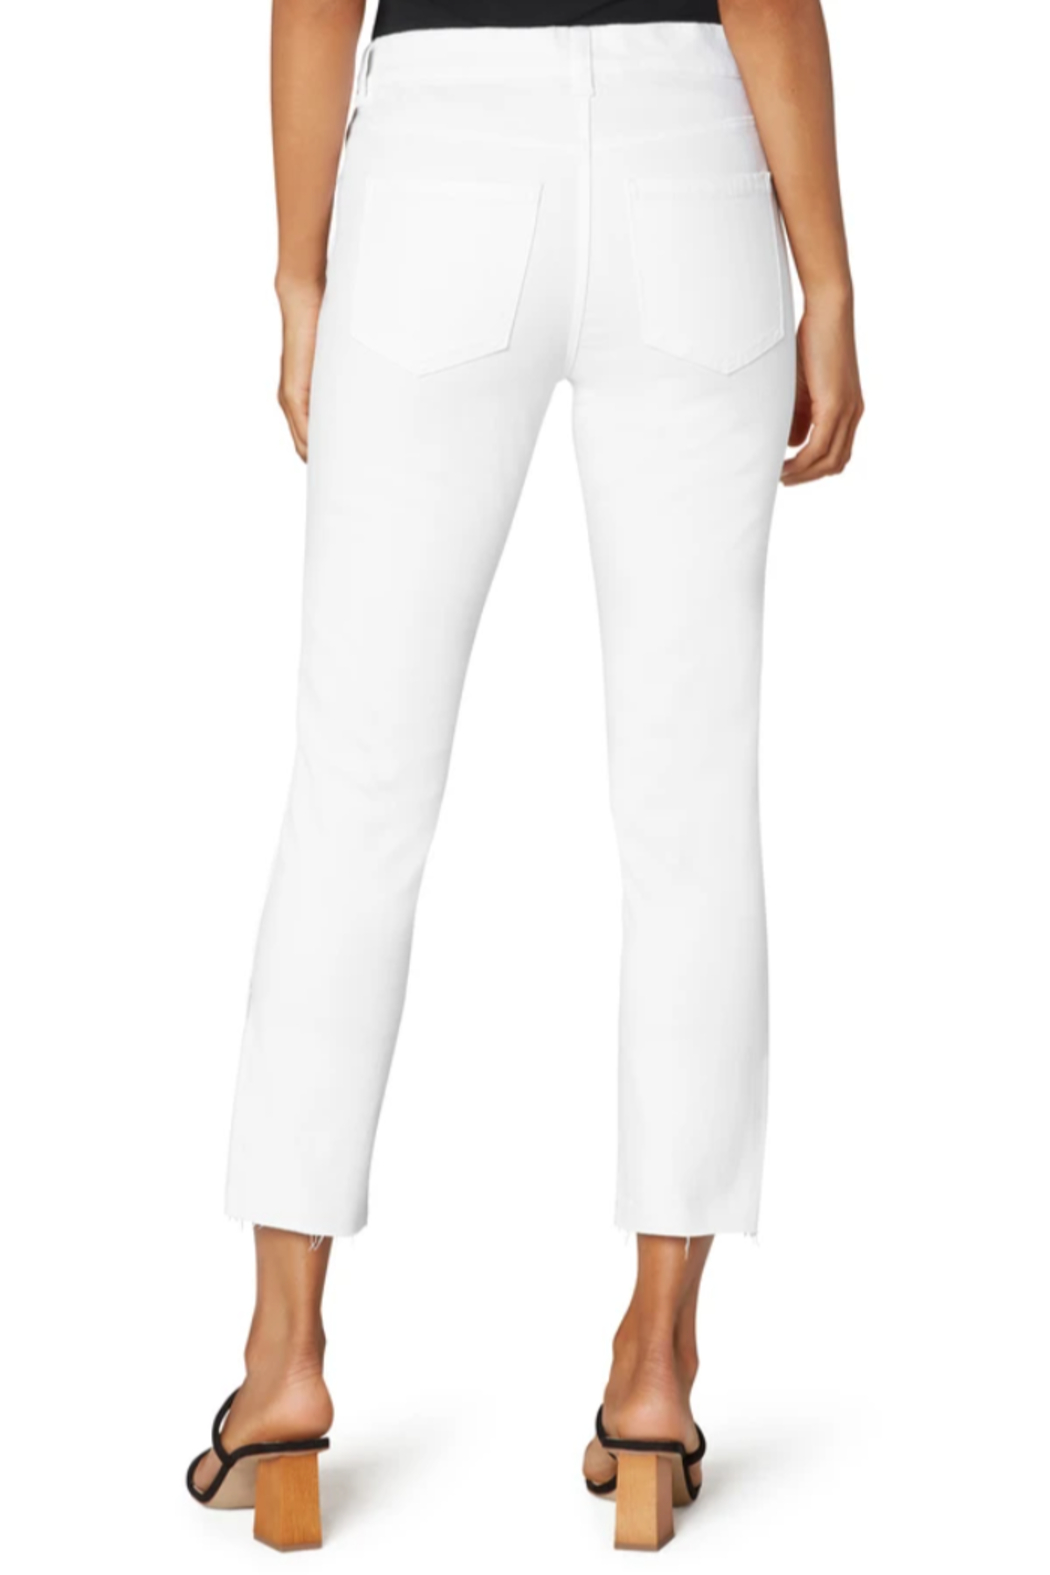 Liverpool  Gia Glider crop with Cut Hem & Slit - Side Cropped Image